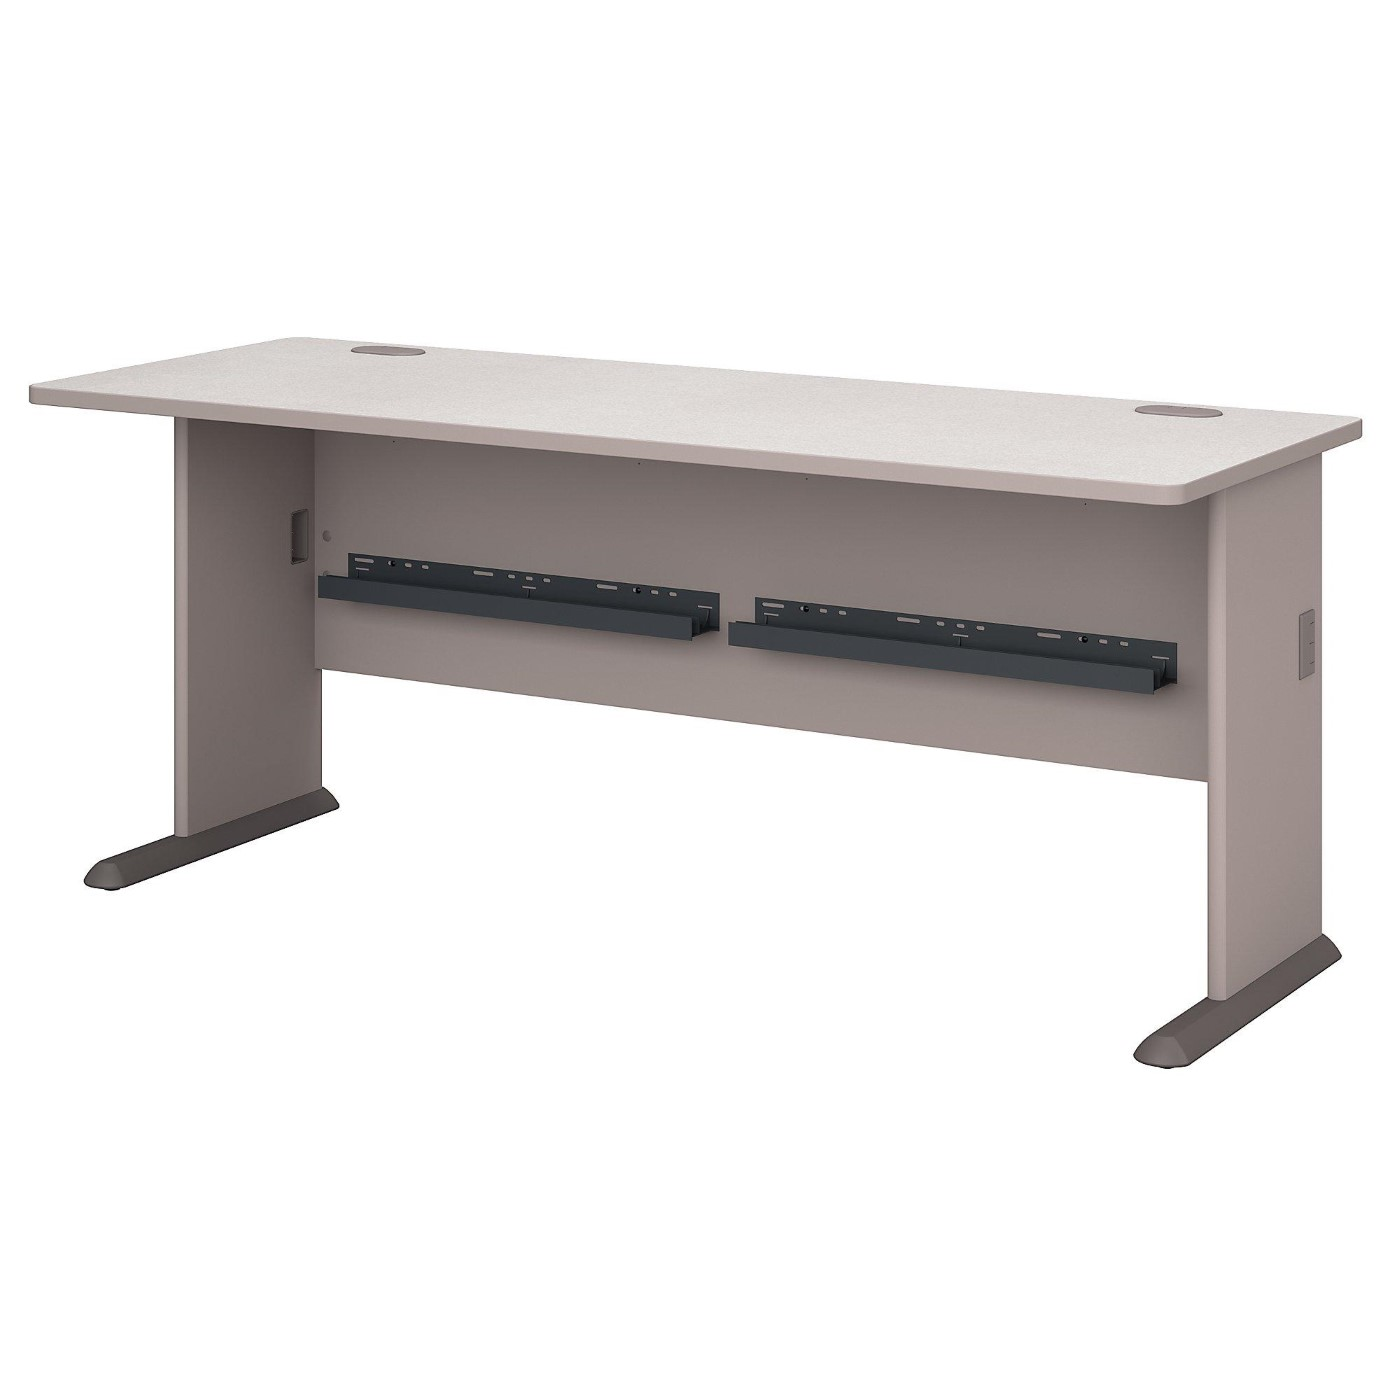 BUSH BUSINESS FURNITURE SERIES A 72W DESK. FREE SHIPPING</font></b></font>&#x1F384<font color=red><b>ERGONOMICHOME HOLIDAY SALE - ENDS DEC. 17, 2019</b></font>&#x1F384